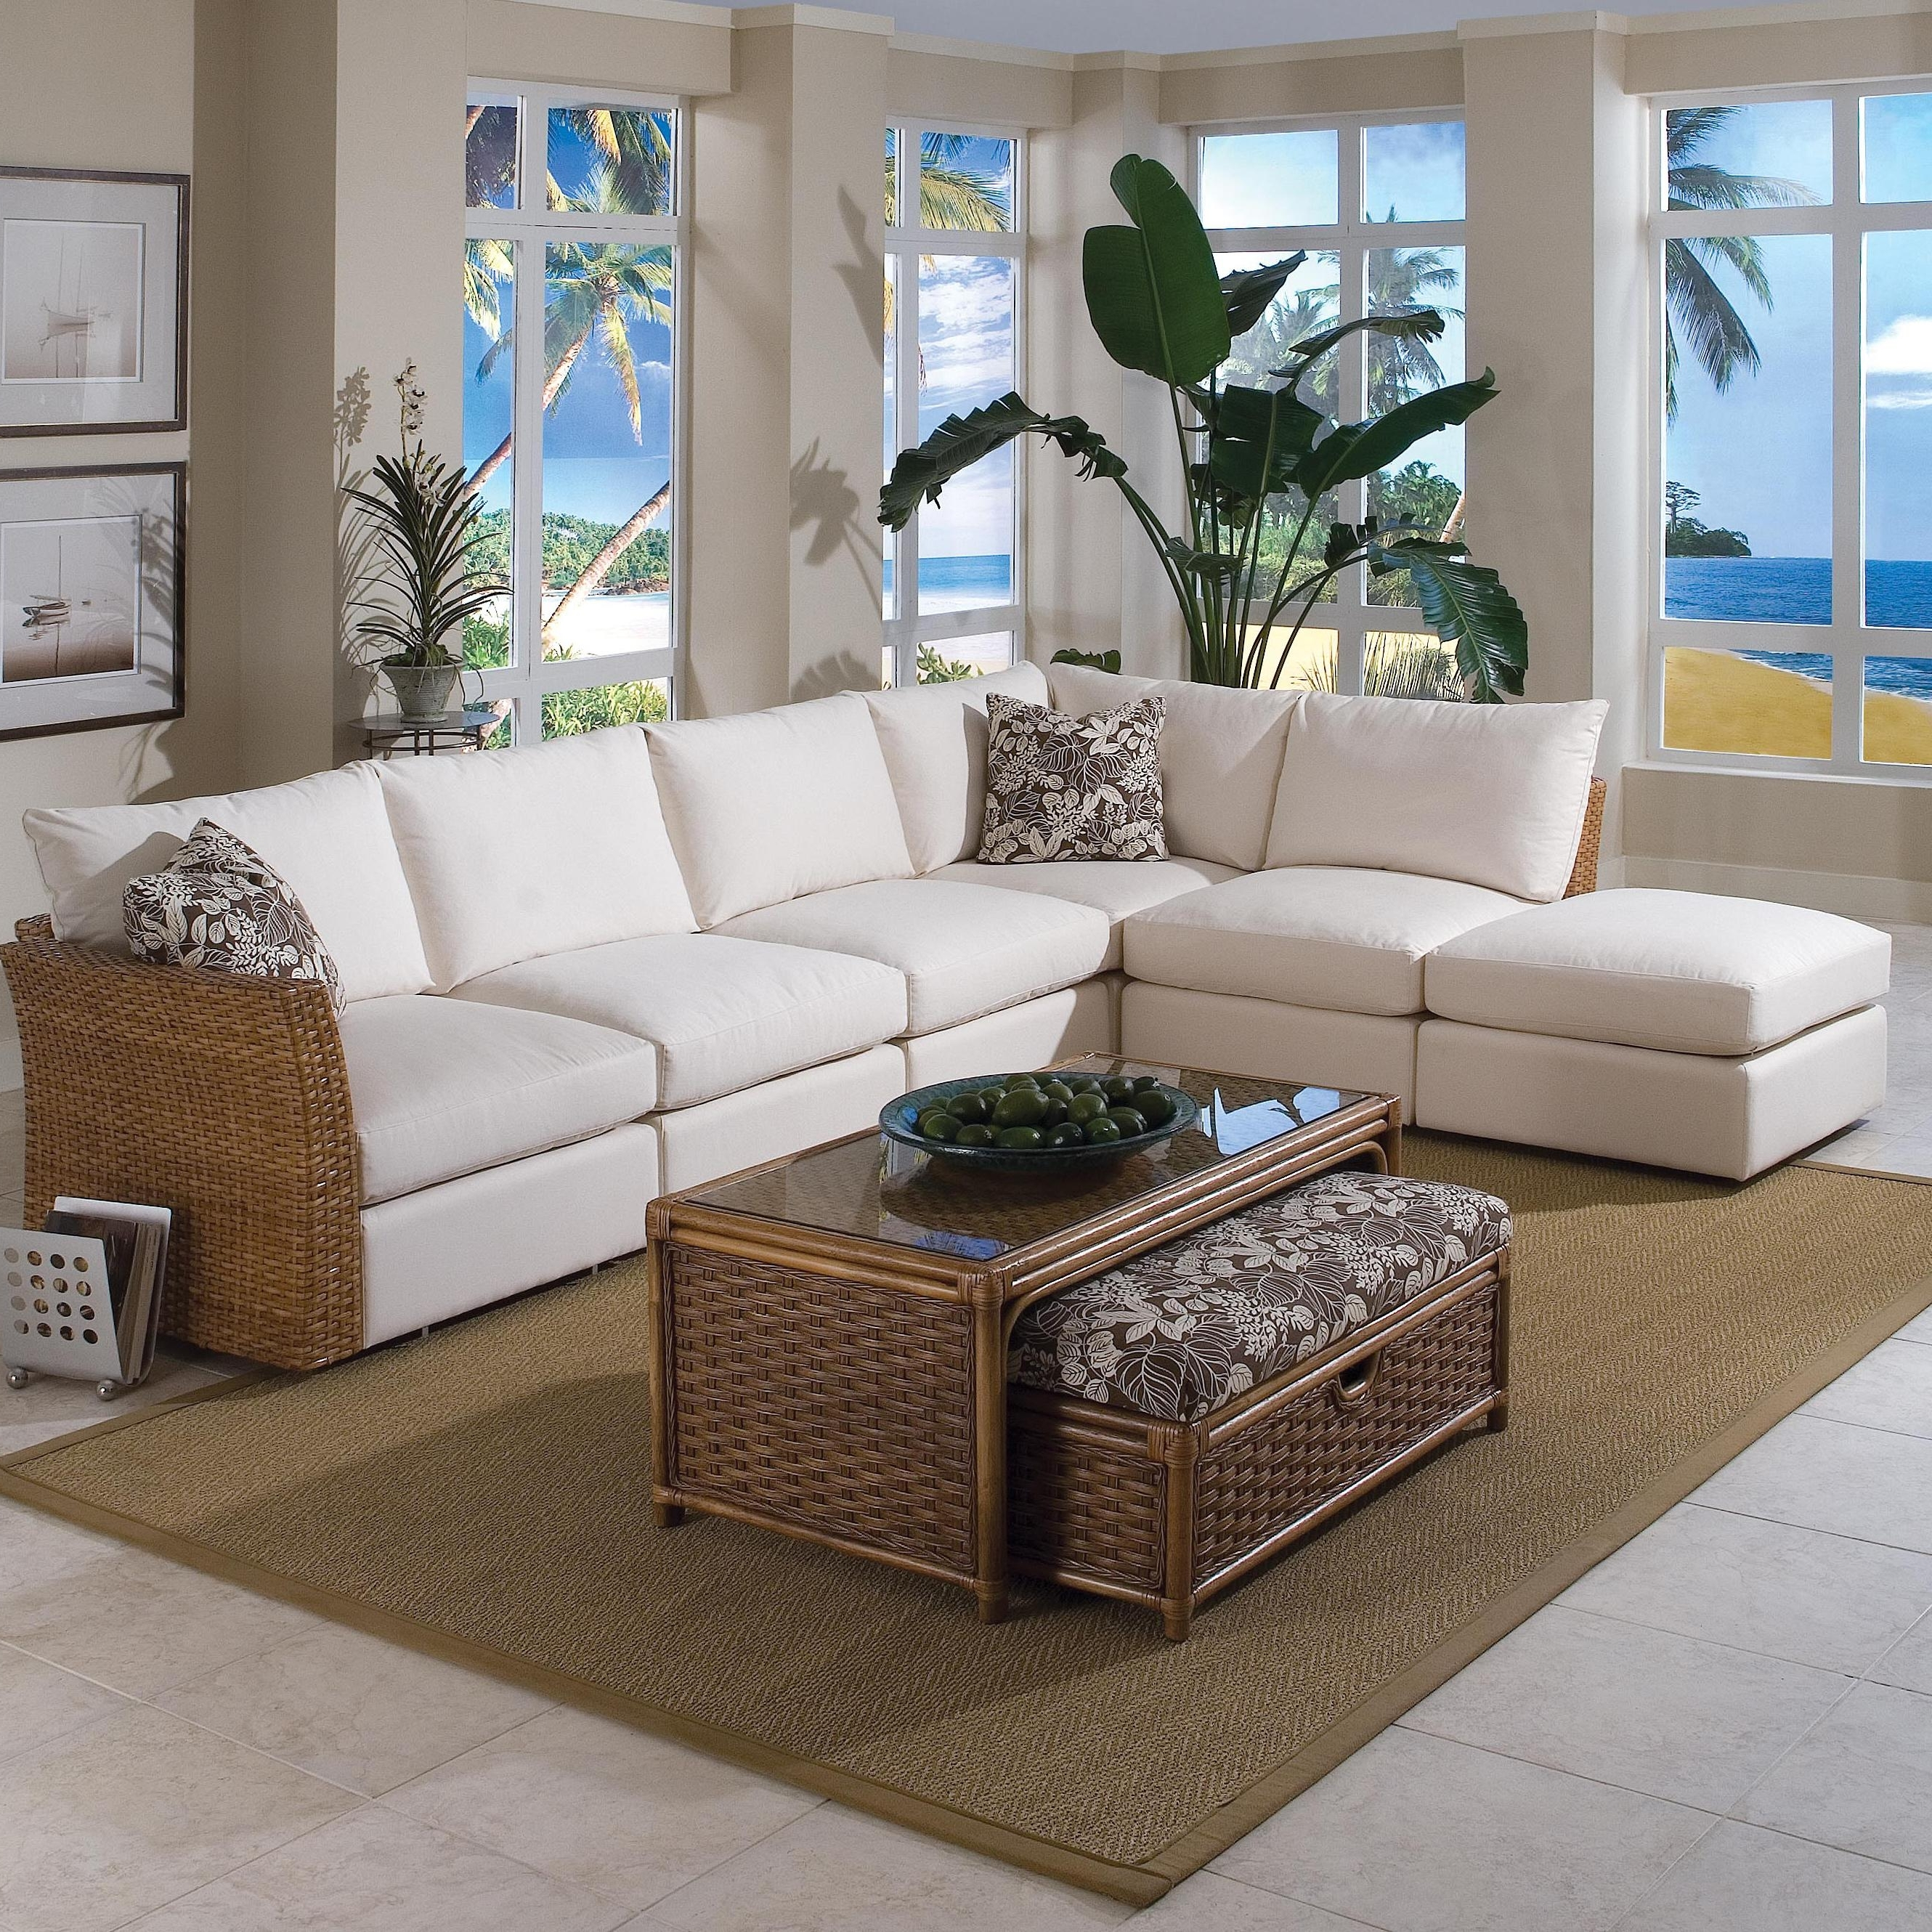 Braxton Culler Grand Water Point Tropical Sectional Sofa With Two Throughout Best And Newest New Orleans Sectional Sofas (View 1 of 20)